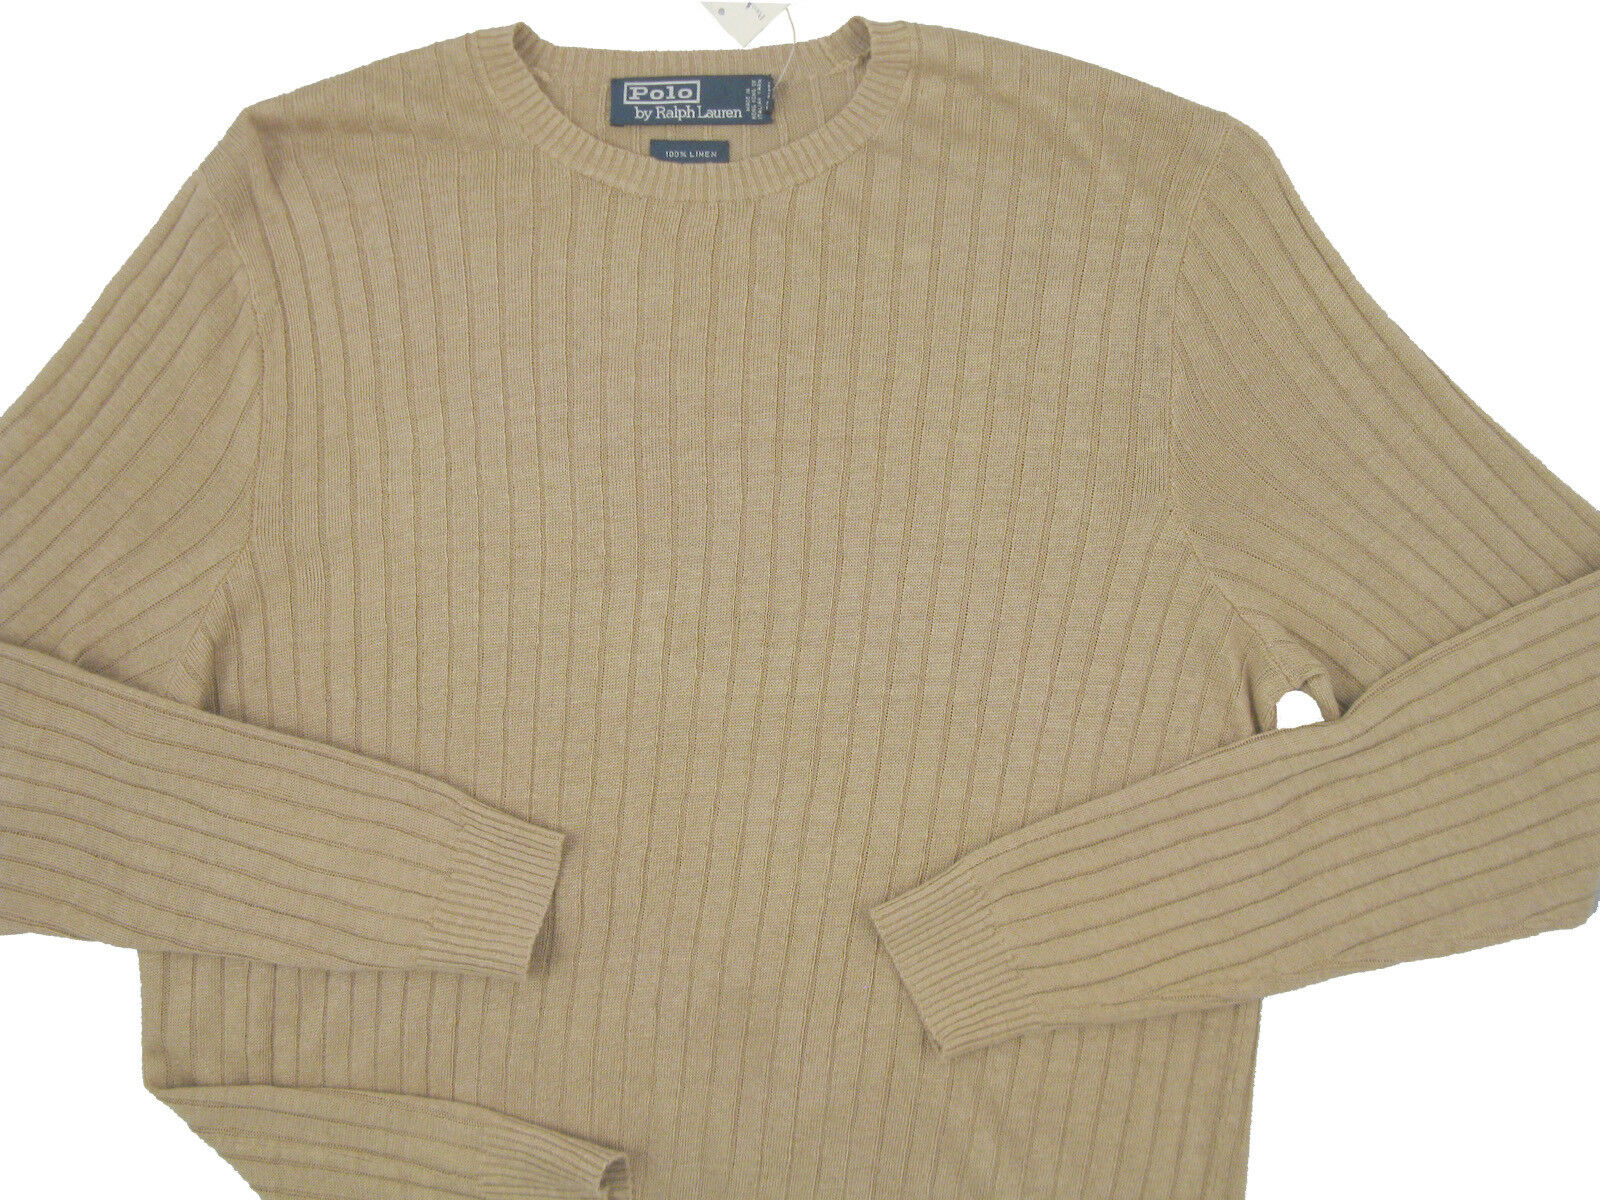 NEW  Polo Ralph Lauren Pure Linen Sweater  M L XL 2X  Slimmer Fit, Ribbed